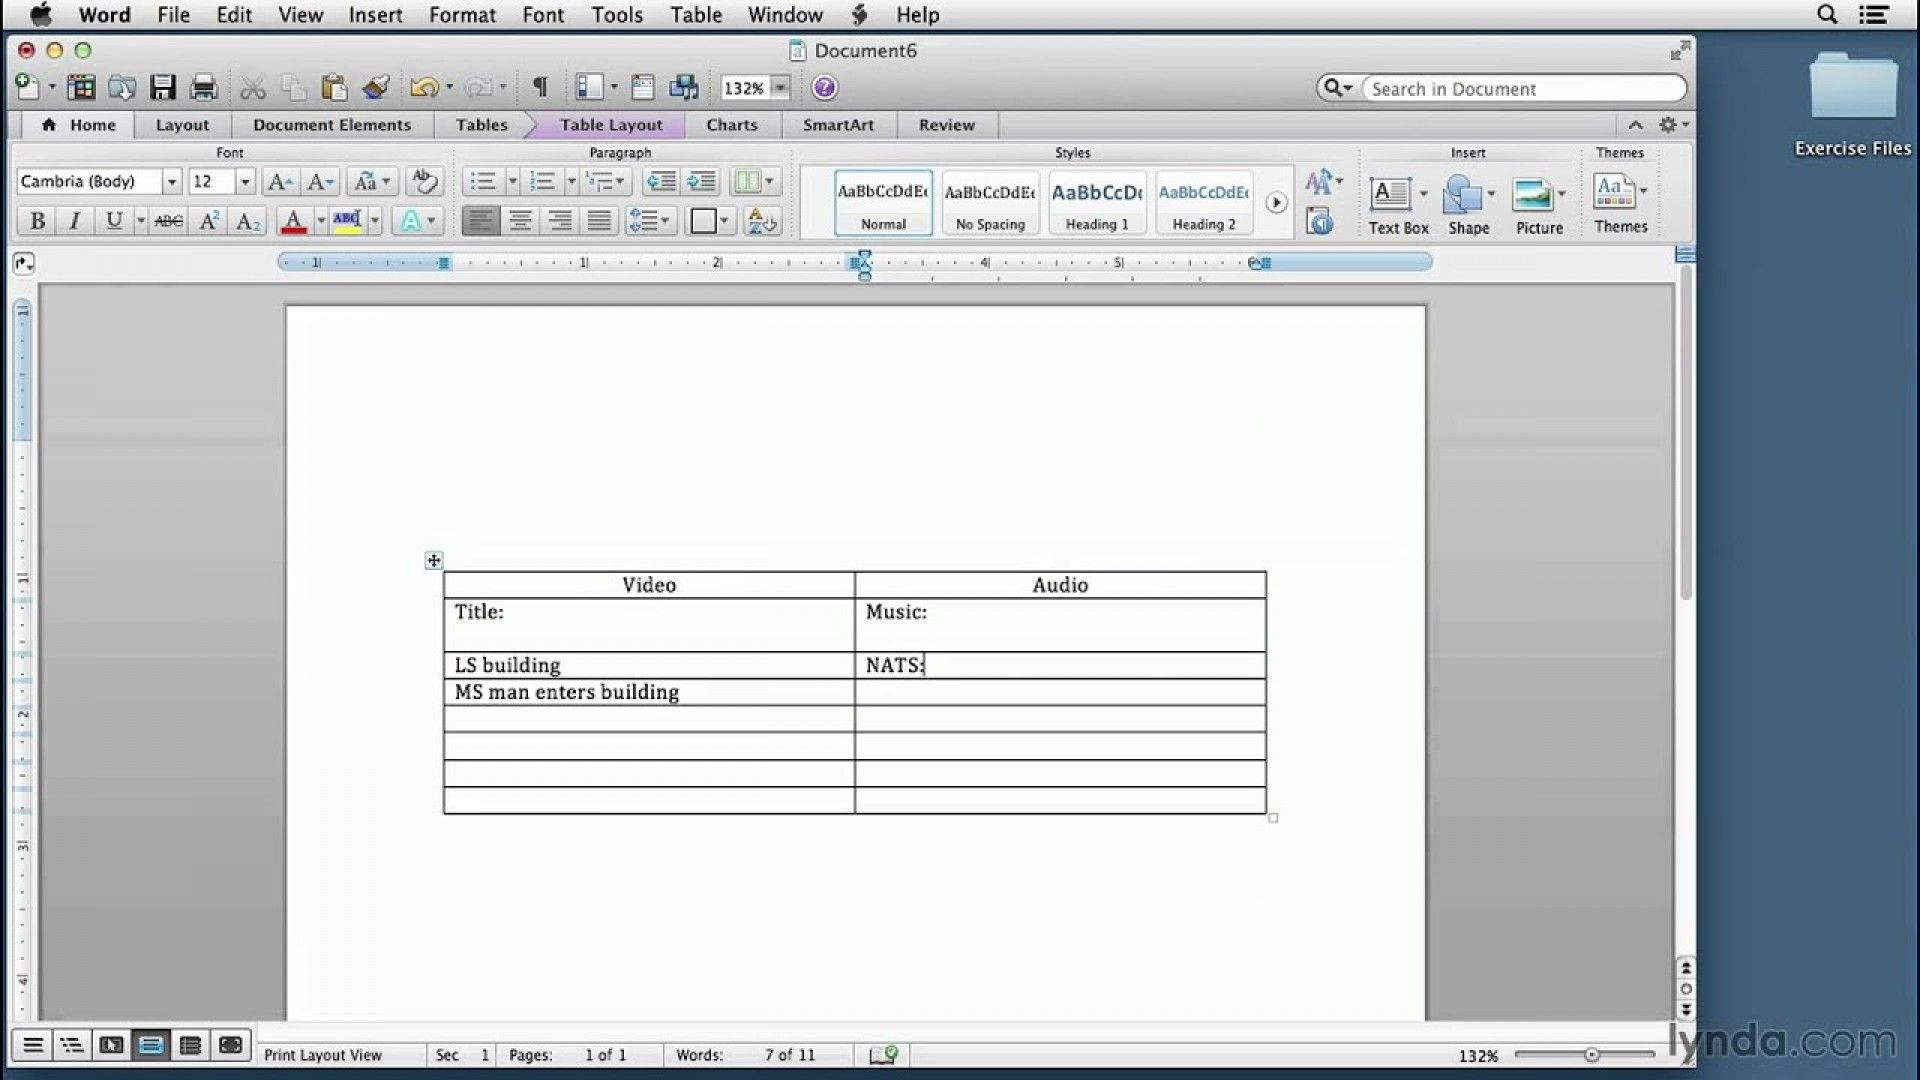 020 Microsoft Word Screenplay Template Ideas Format with